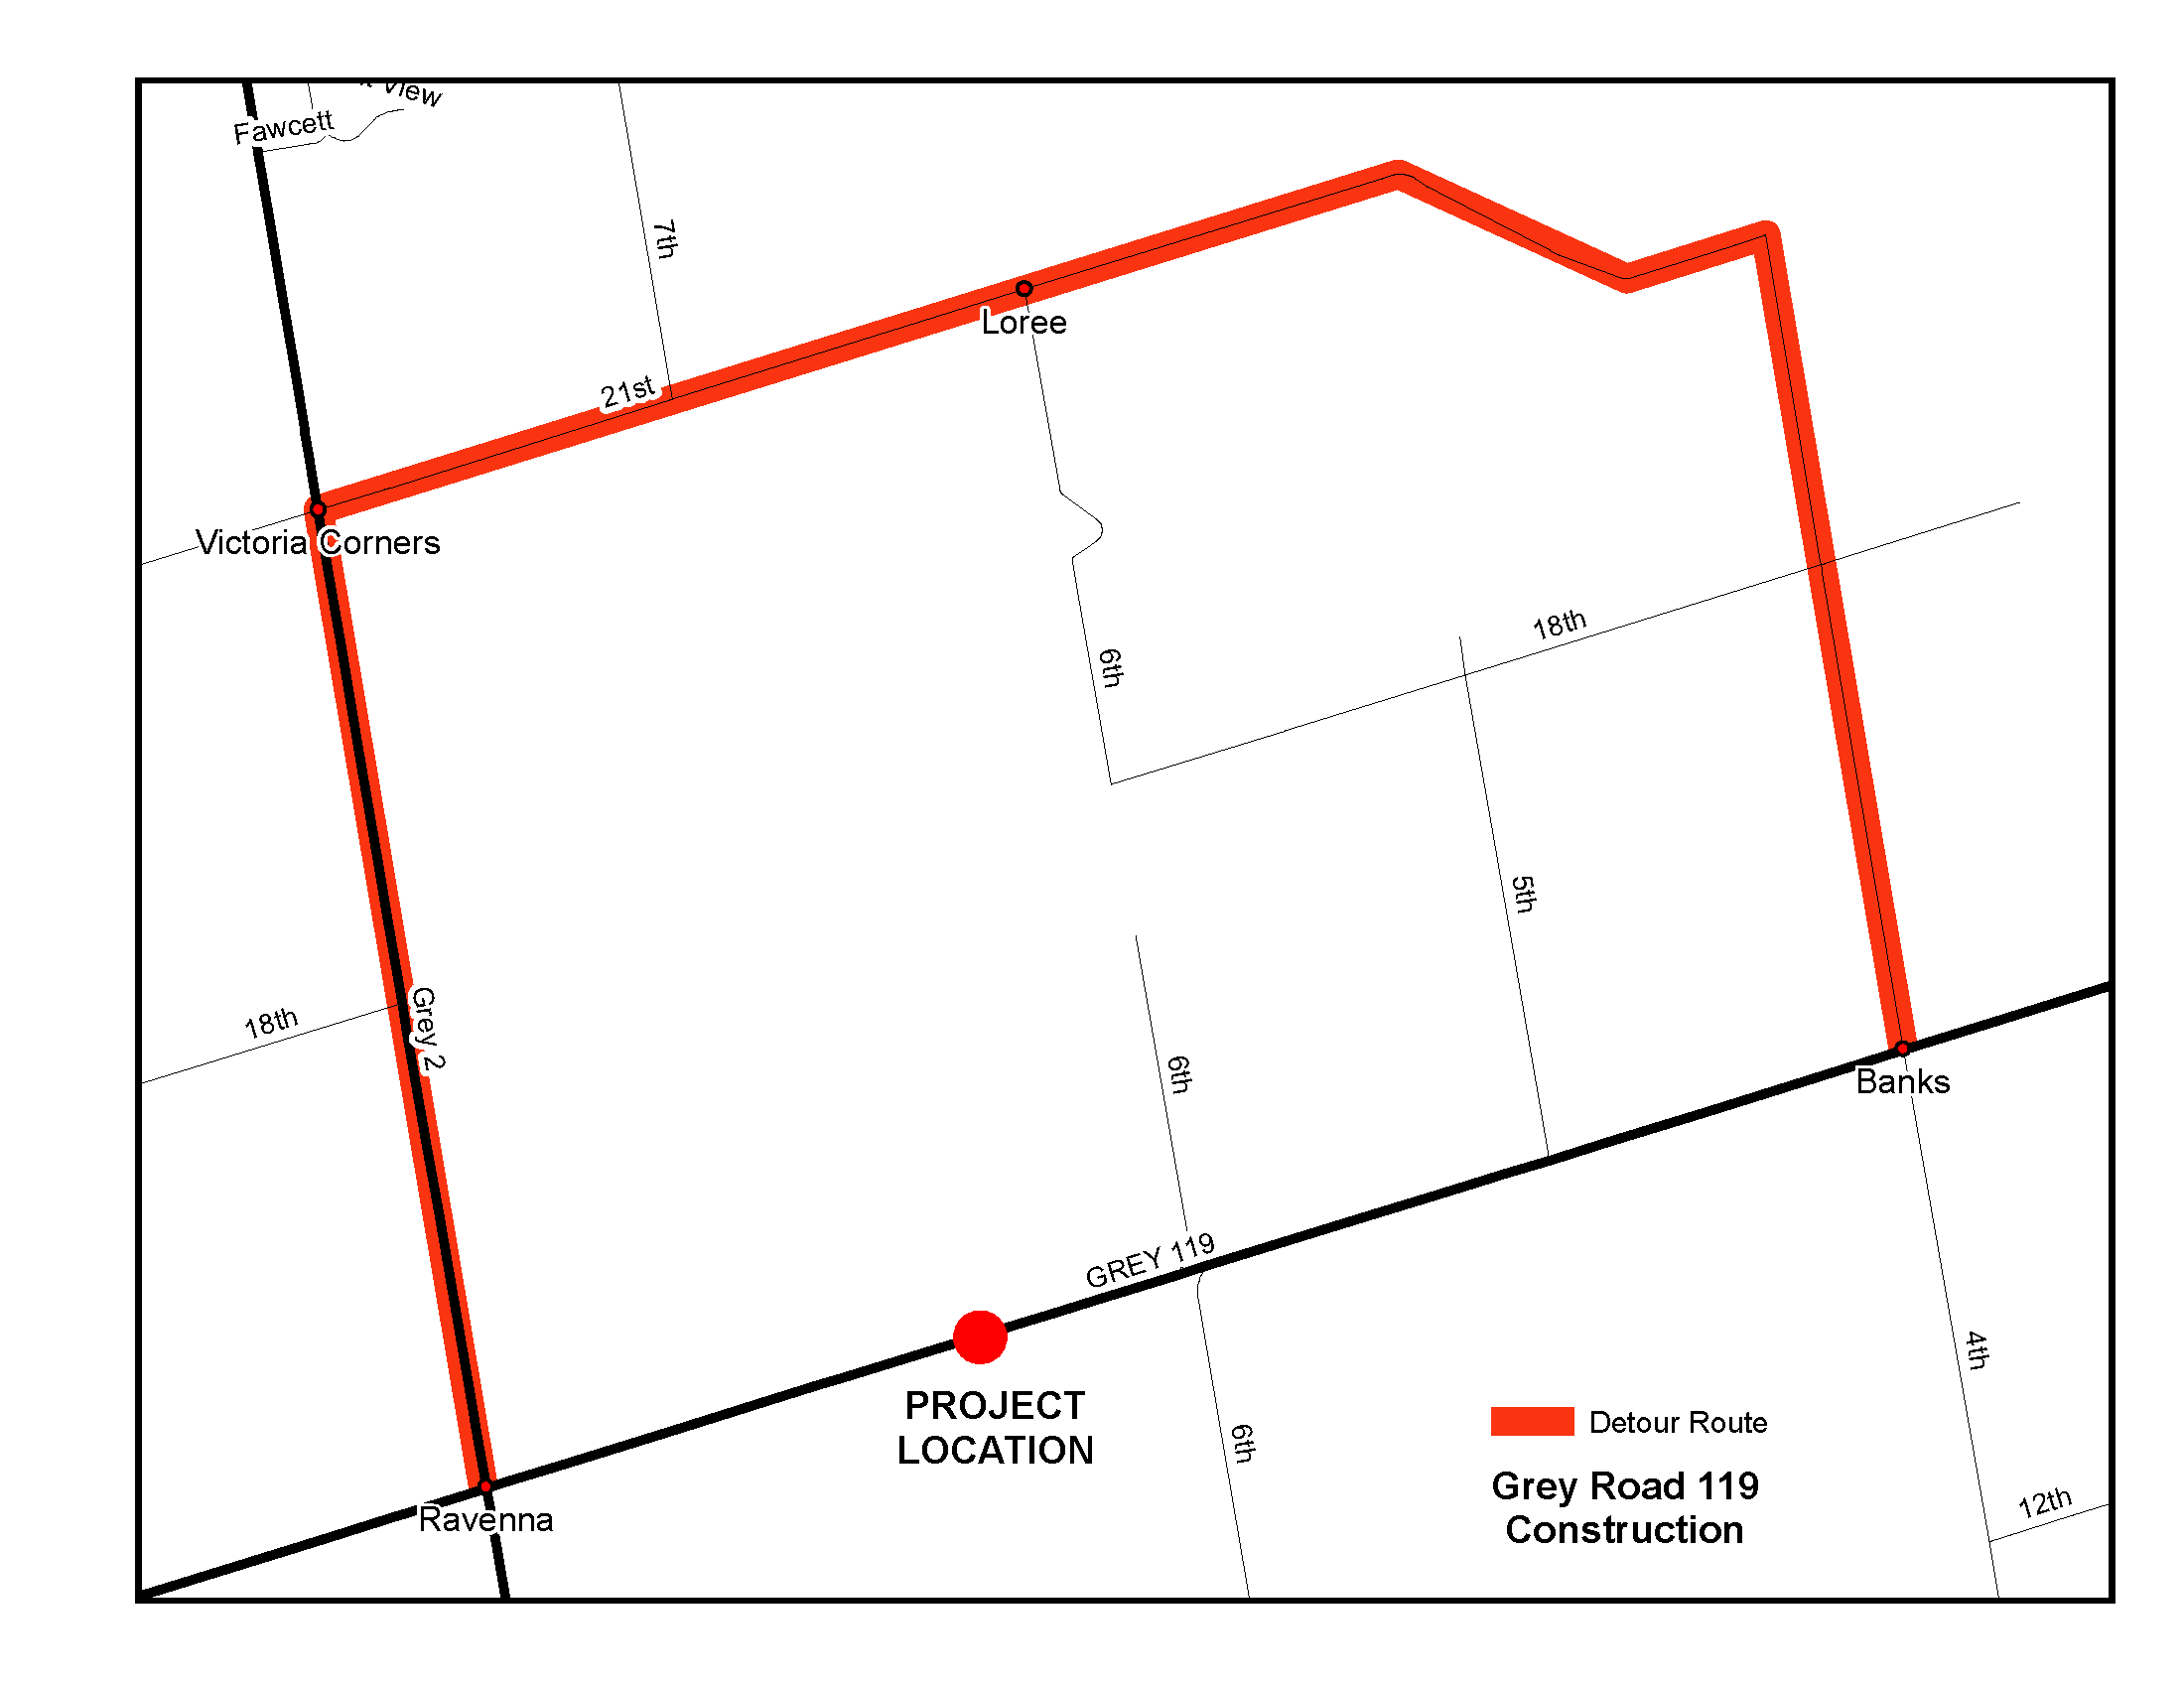 Map of construction and the detour route.